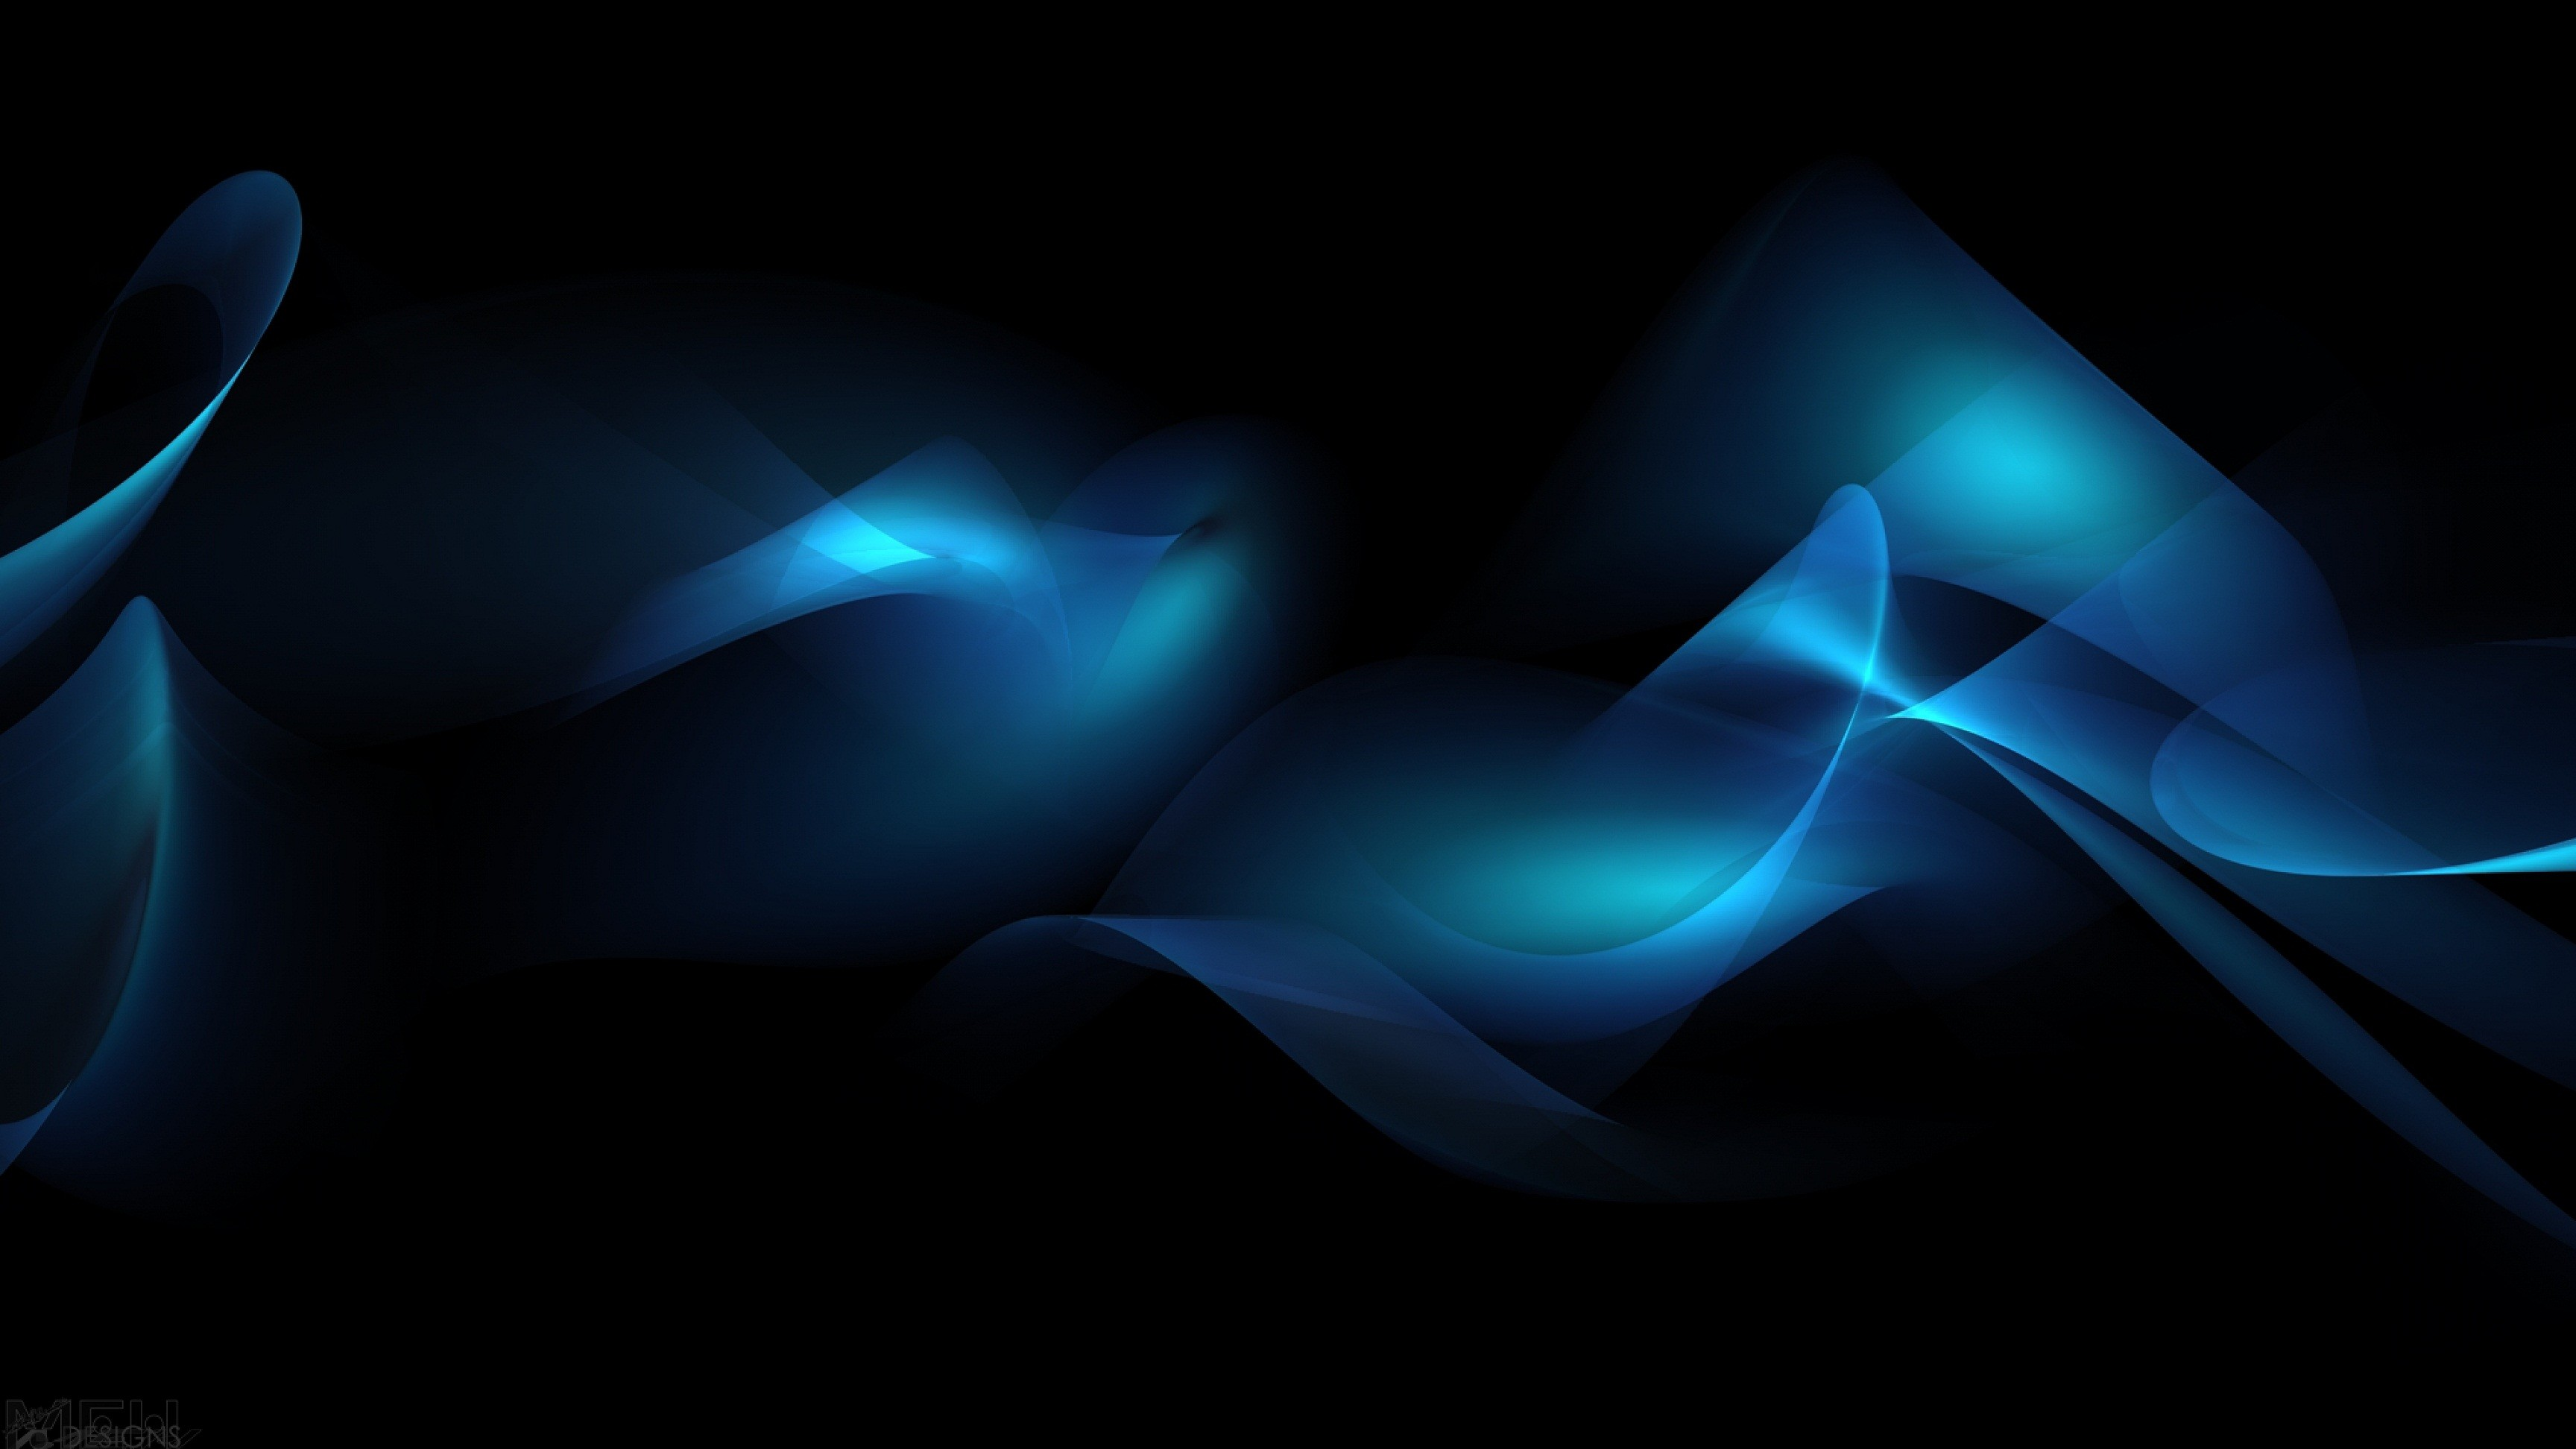 73 1080P Blue Wallpapers on WallpaperPlay 3456x1944